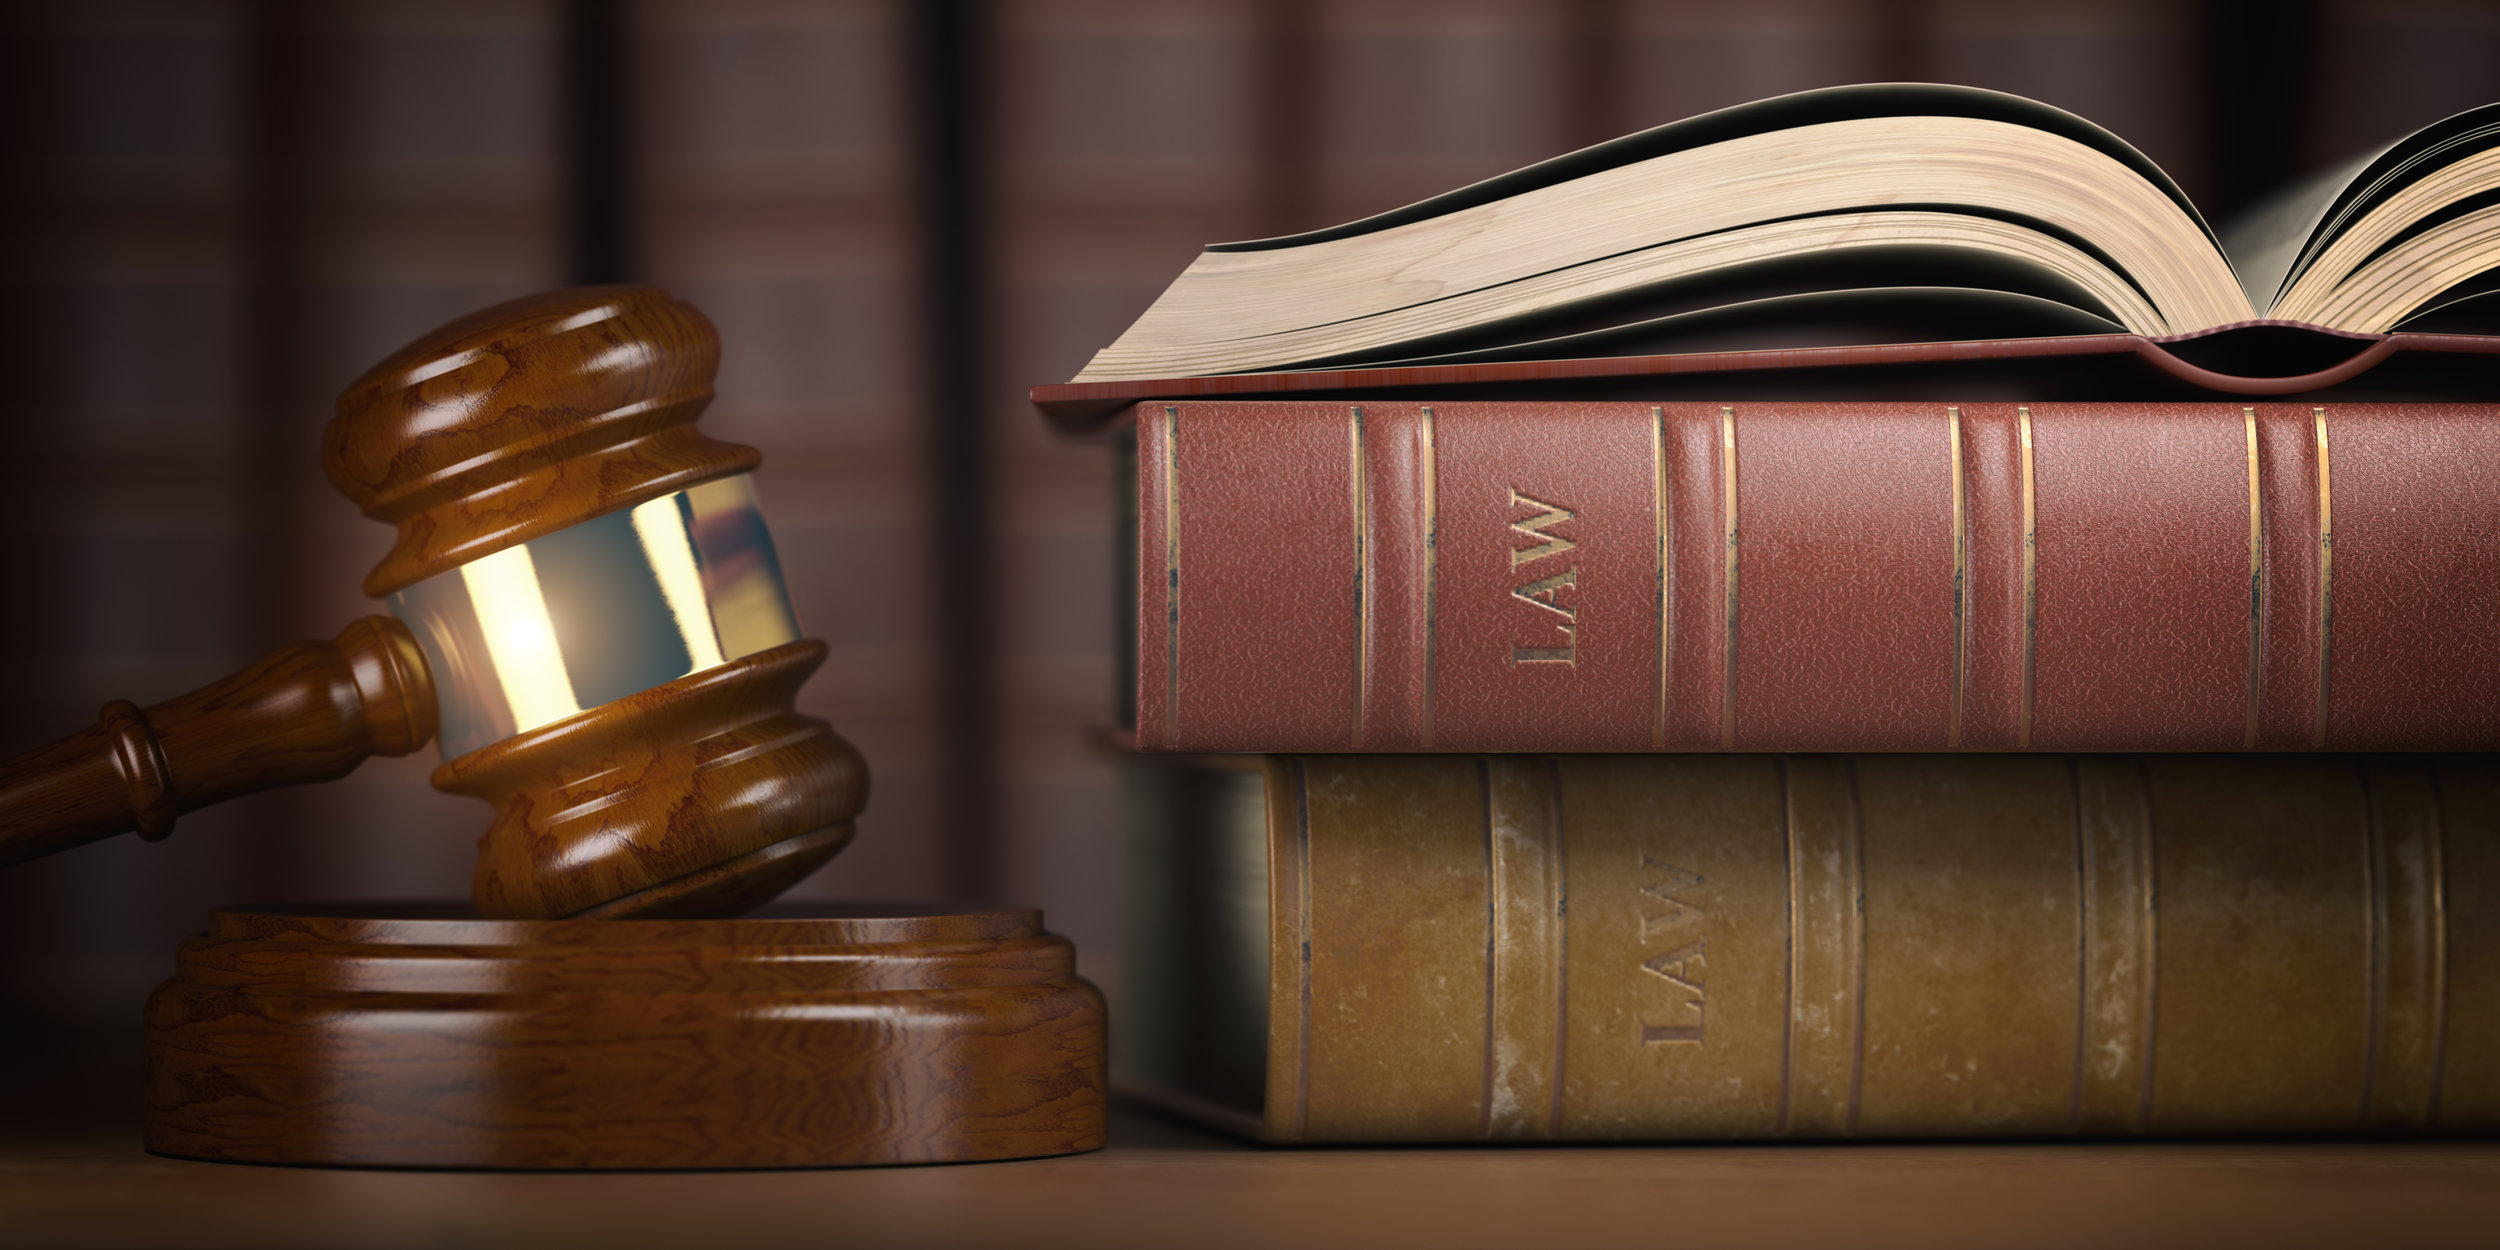 justice-law-and-legal-concept-judge-gavel-and-law-NA38UC4.jpg